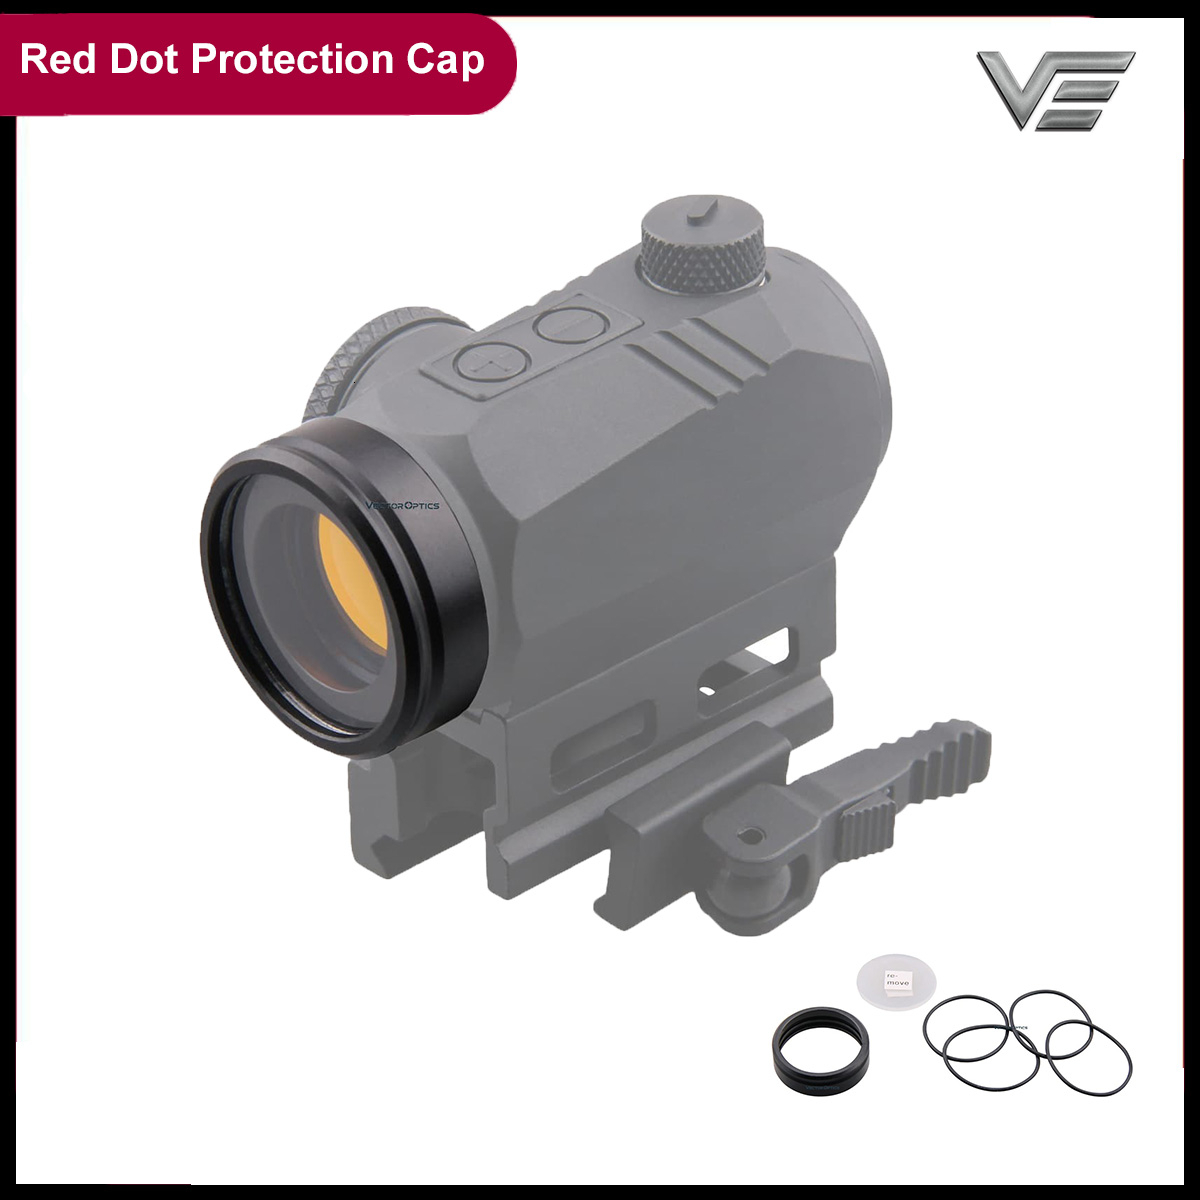 Vector Optics Full Metal Bulletproof Hunting Airsoft Red Dot Sight Scope Objective Lens Protection With Cover